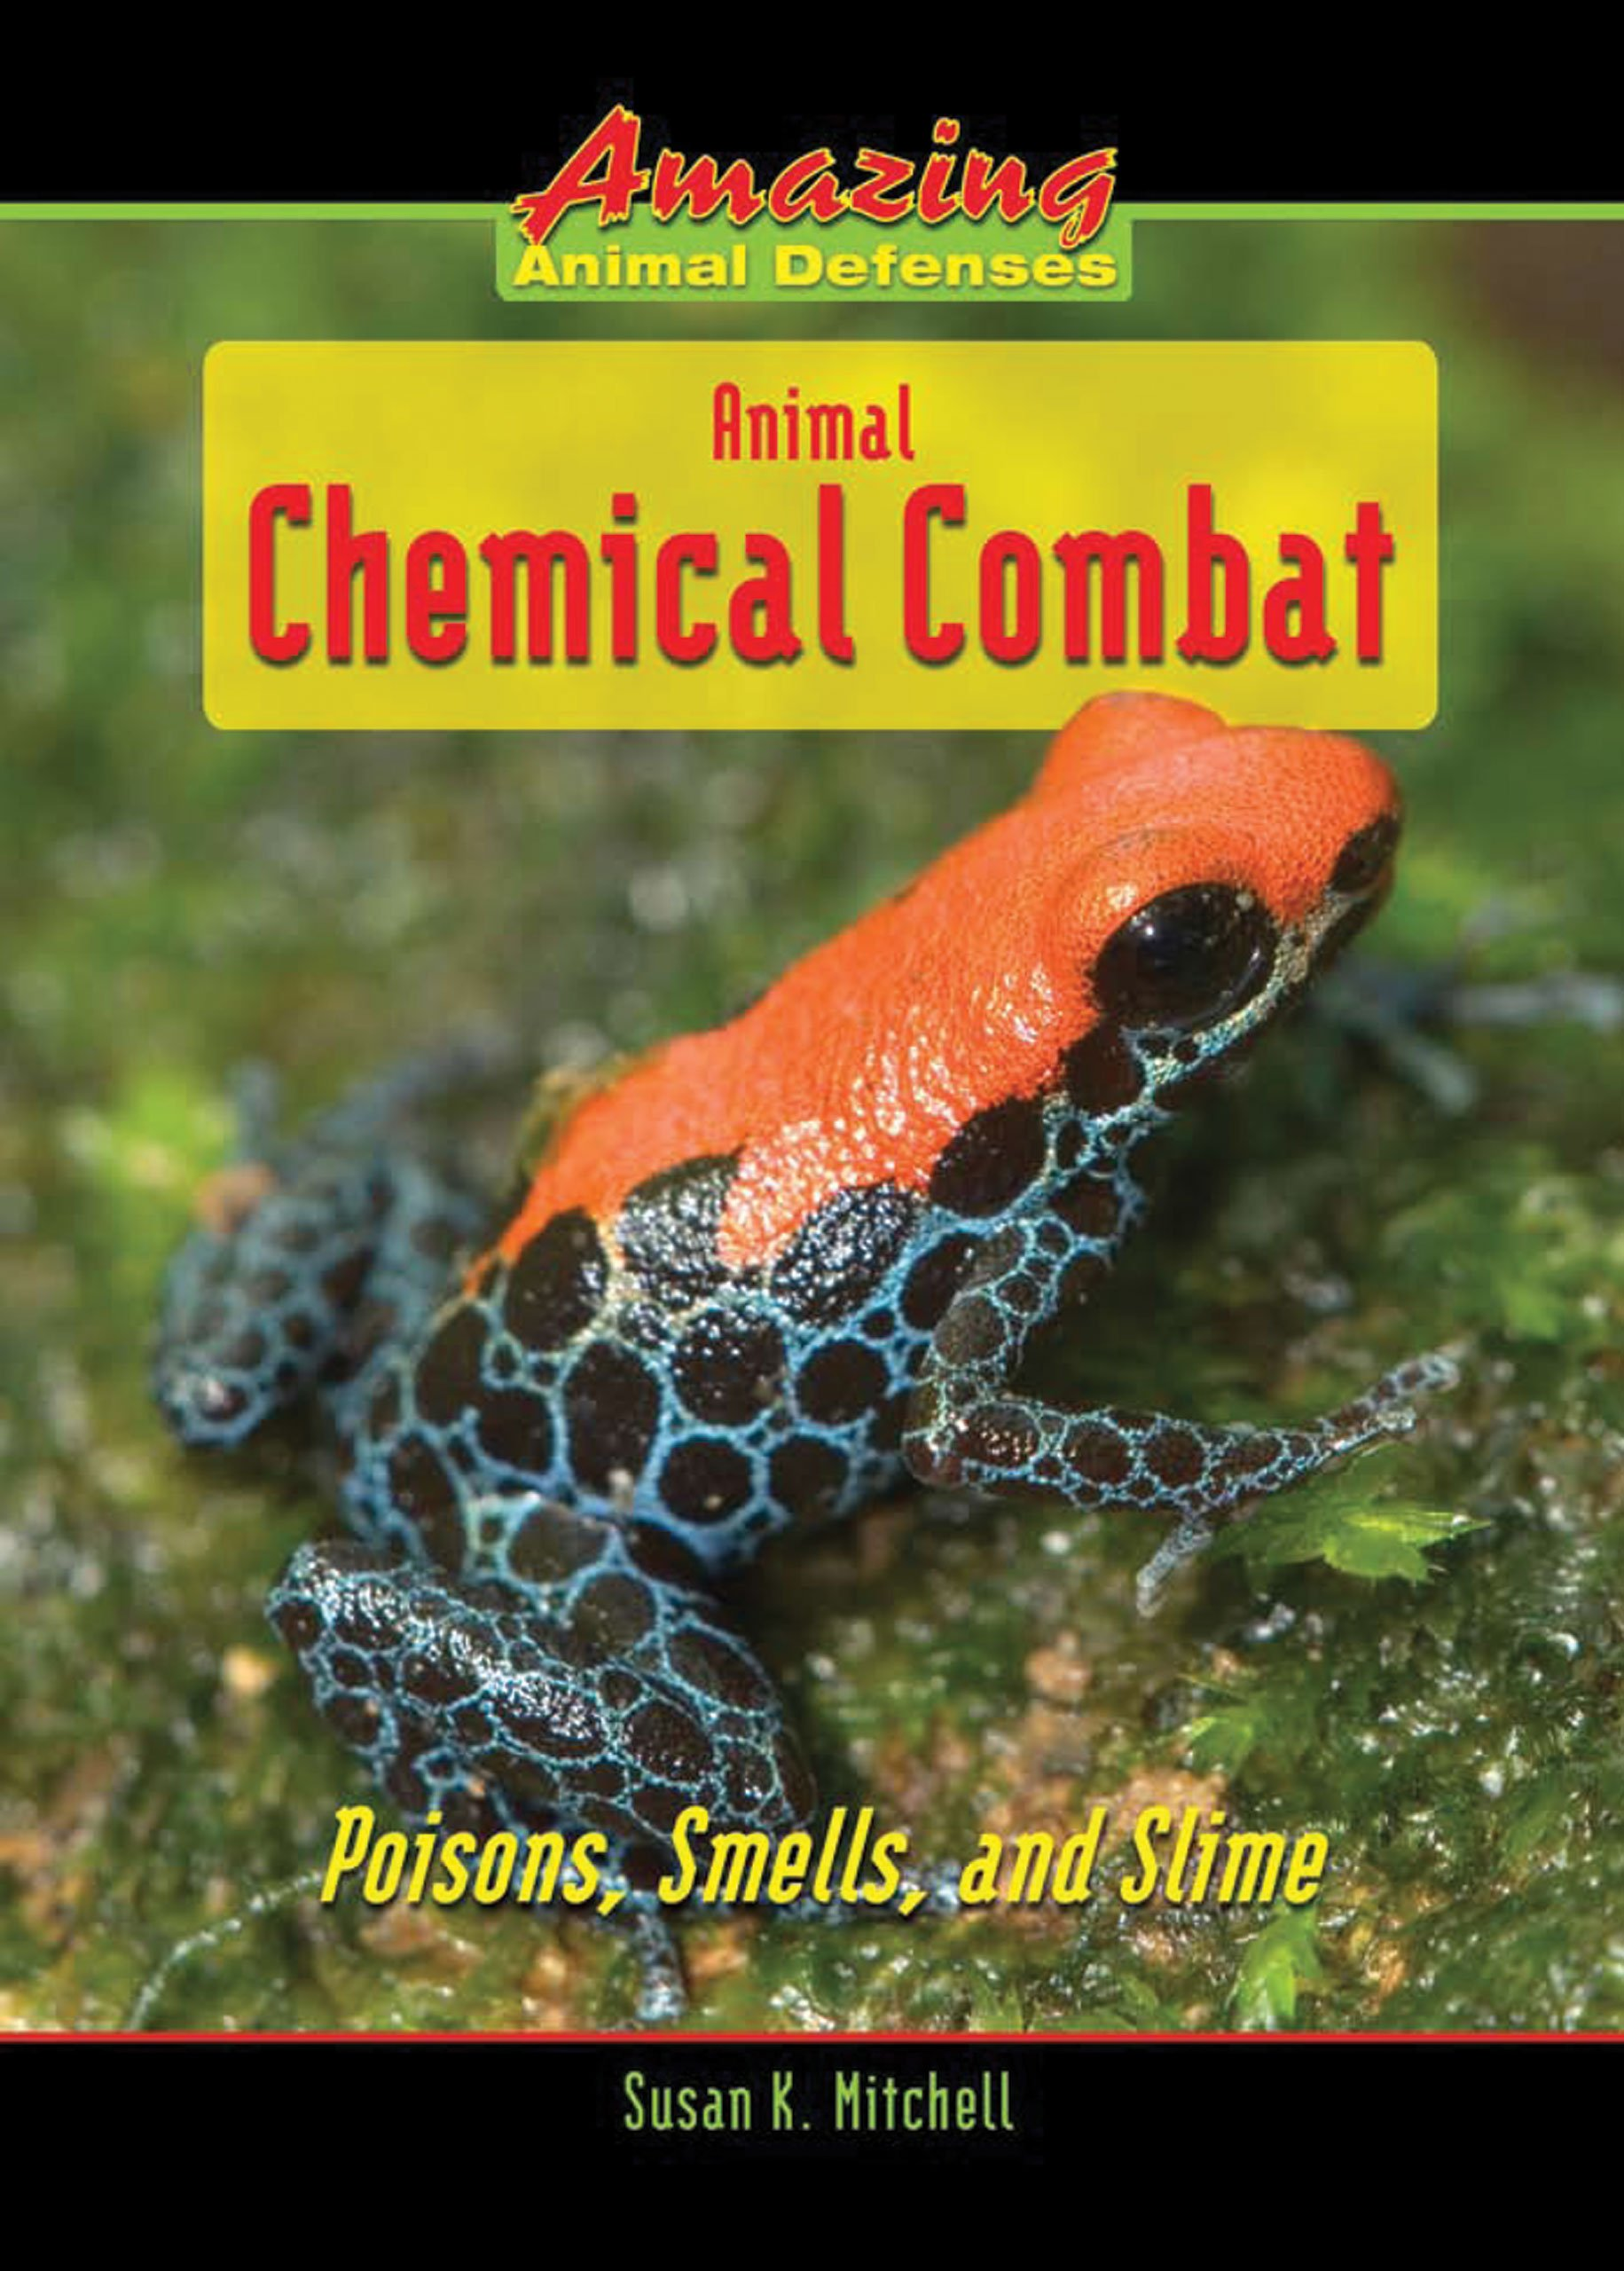 Animal Chemical Combat: Poisons, Smells, and Slime (Amazing Animal Defenses) PDF